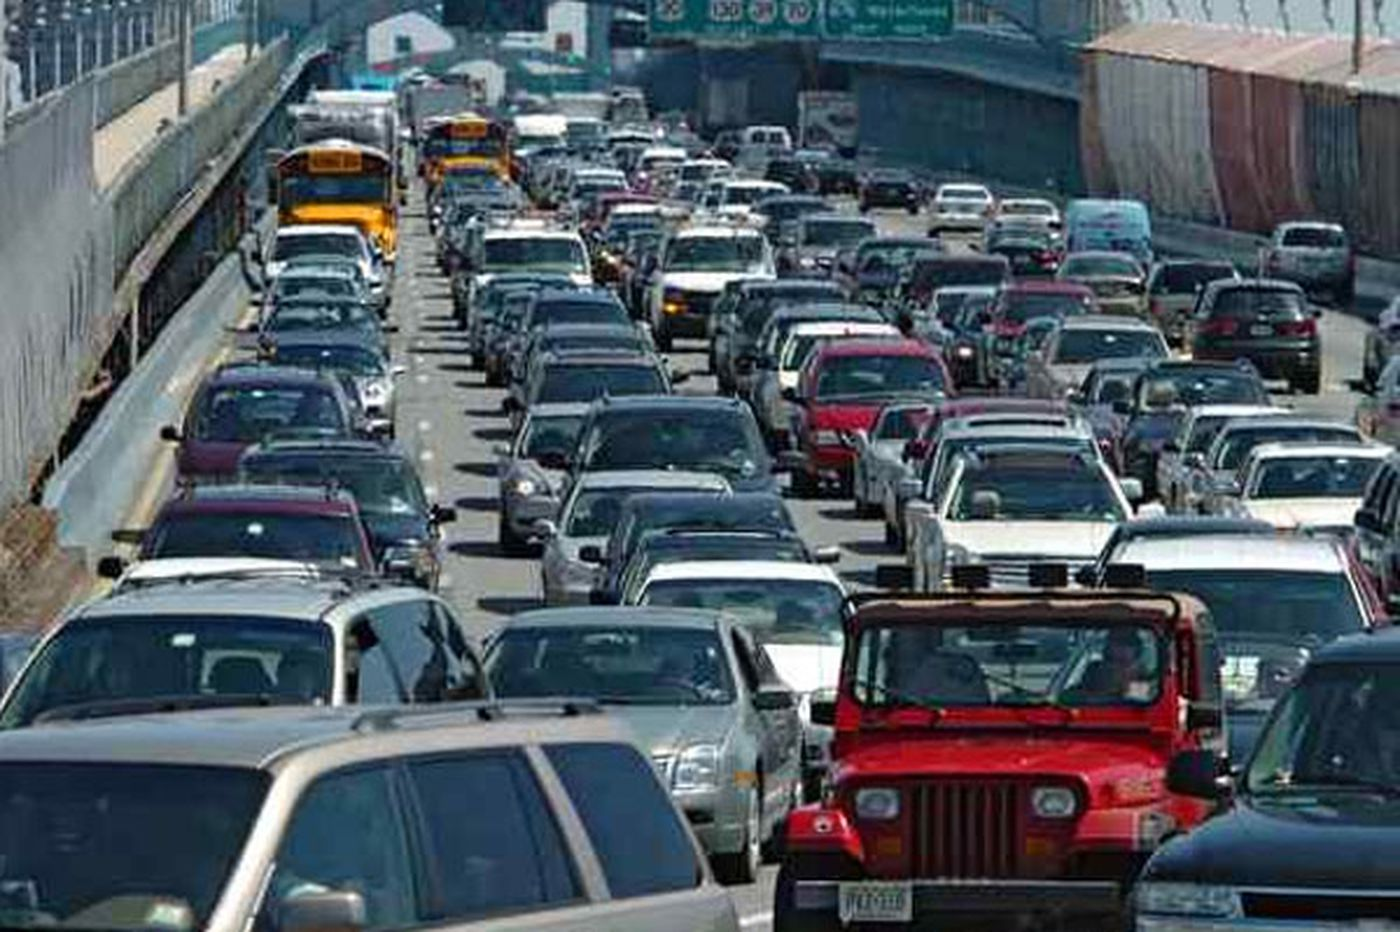 Harmful vehicle emissions at record low